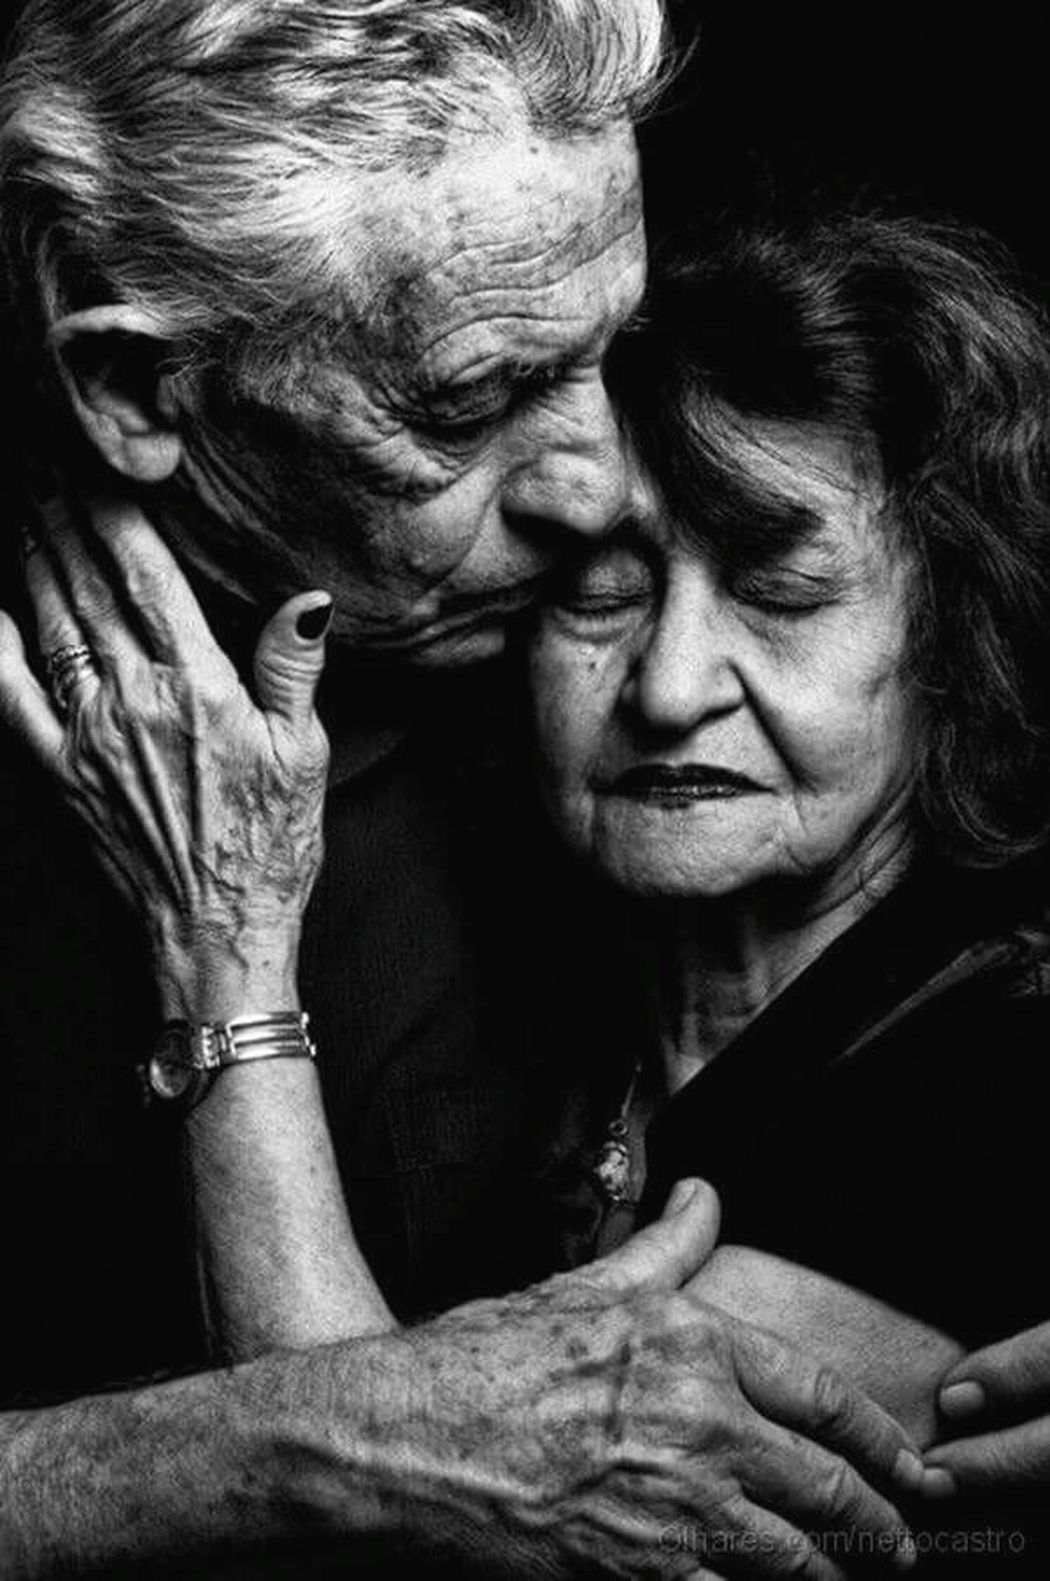 couple love Two People One Soul Togetherness Spent Lovely Time Keepsmilingkeepshining No Age For Lovers Promises Made Every Memory Saved' 😍😌😊